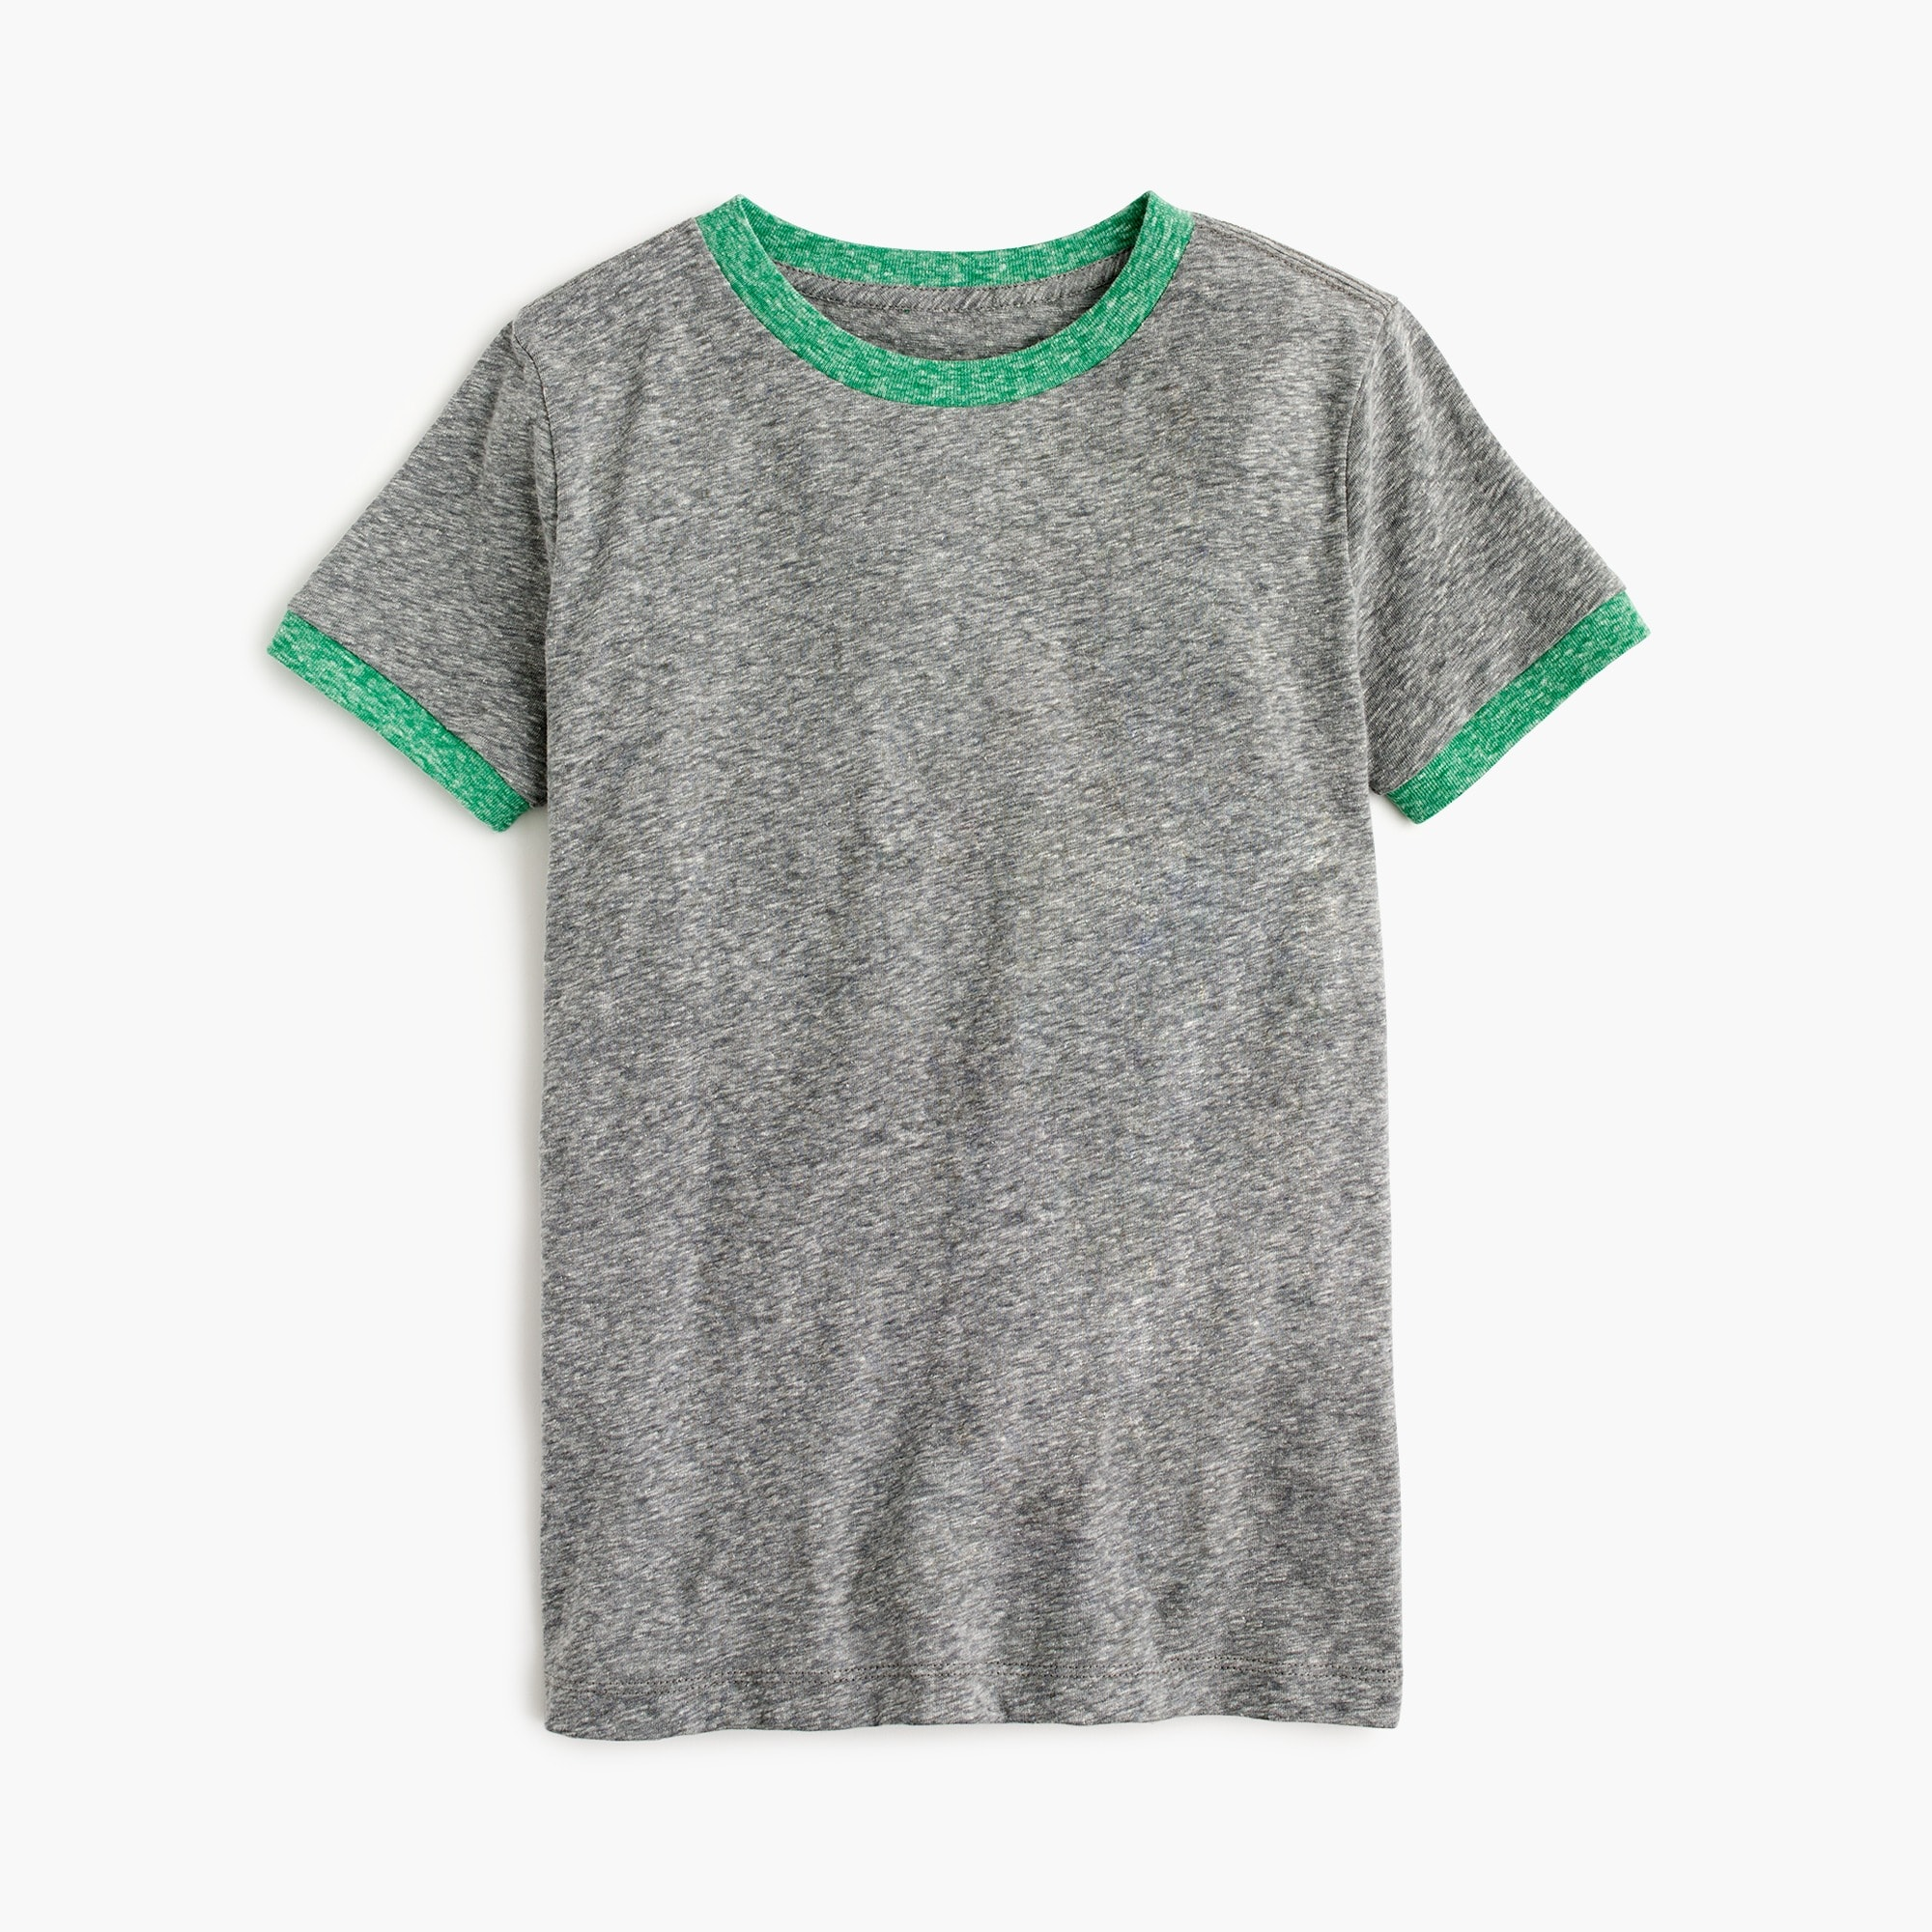 Boys' ringer T-shirt in supersoft jersey boy new arrivals c